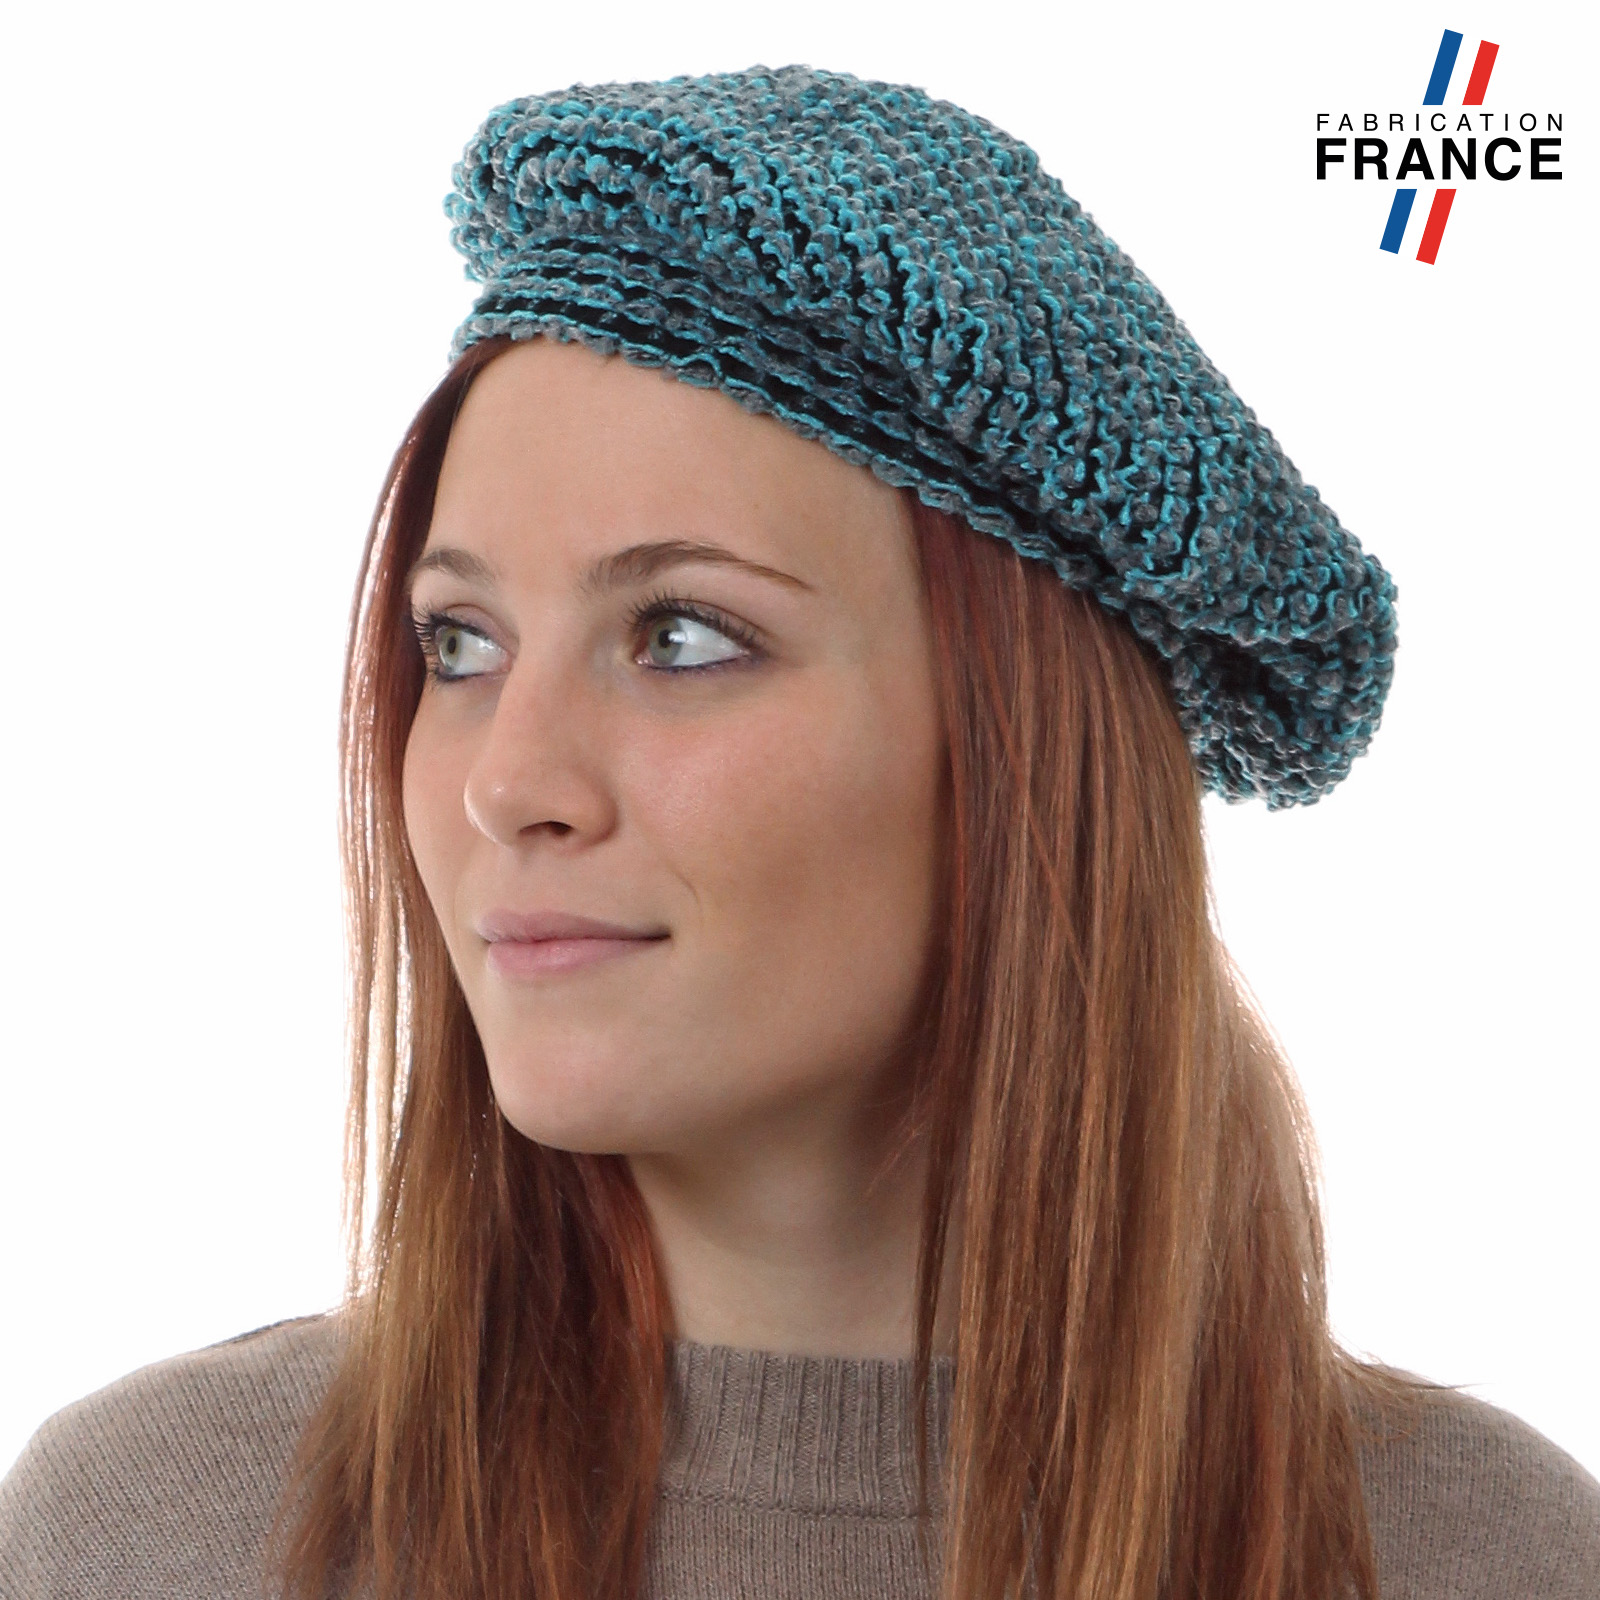 CP-00682-V16-beret-femme-bleu-turquoise-fabrication-francaise